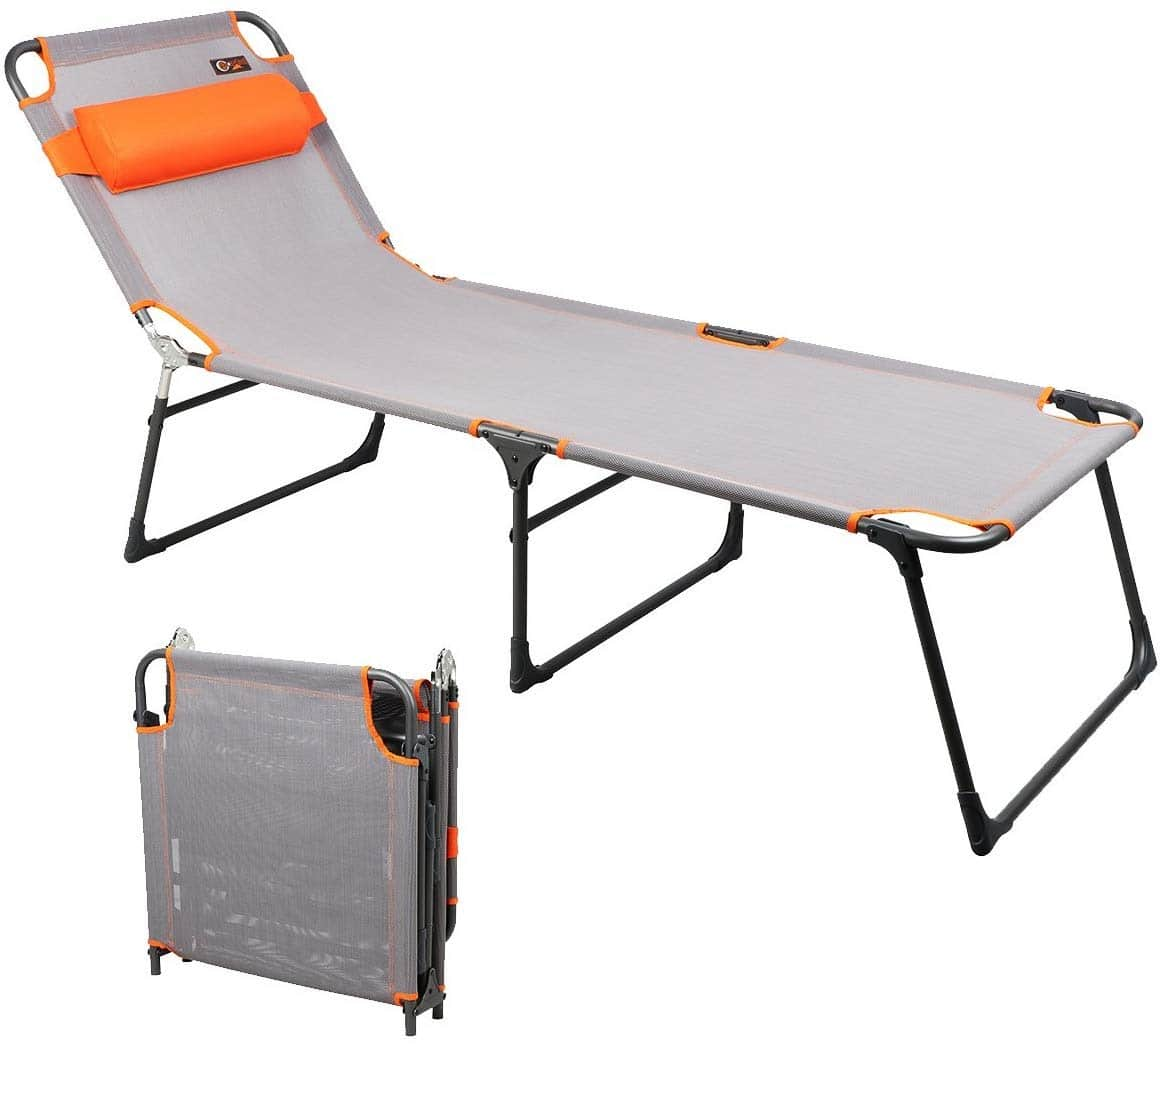 8. PORTAL Foldable Lounge Chair with Adjustable Reclining Beach Lounge Chair